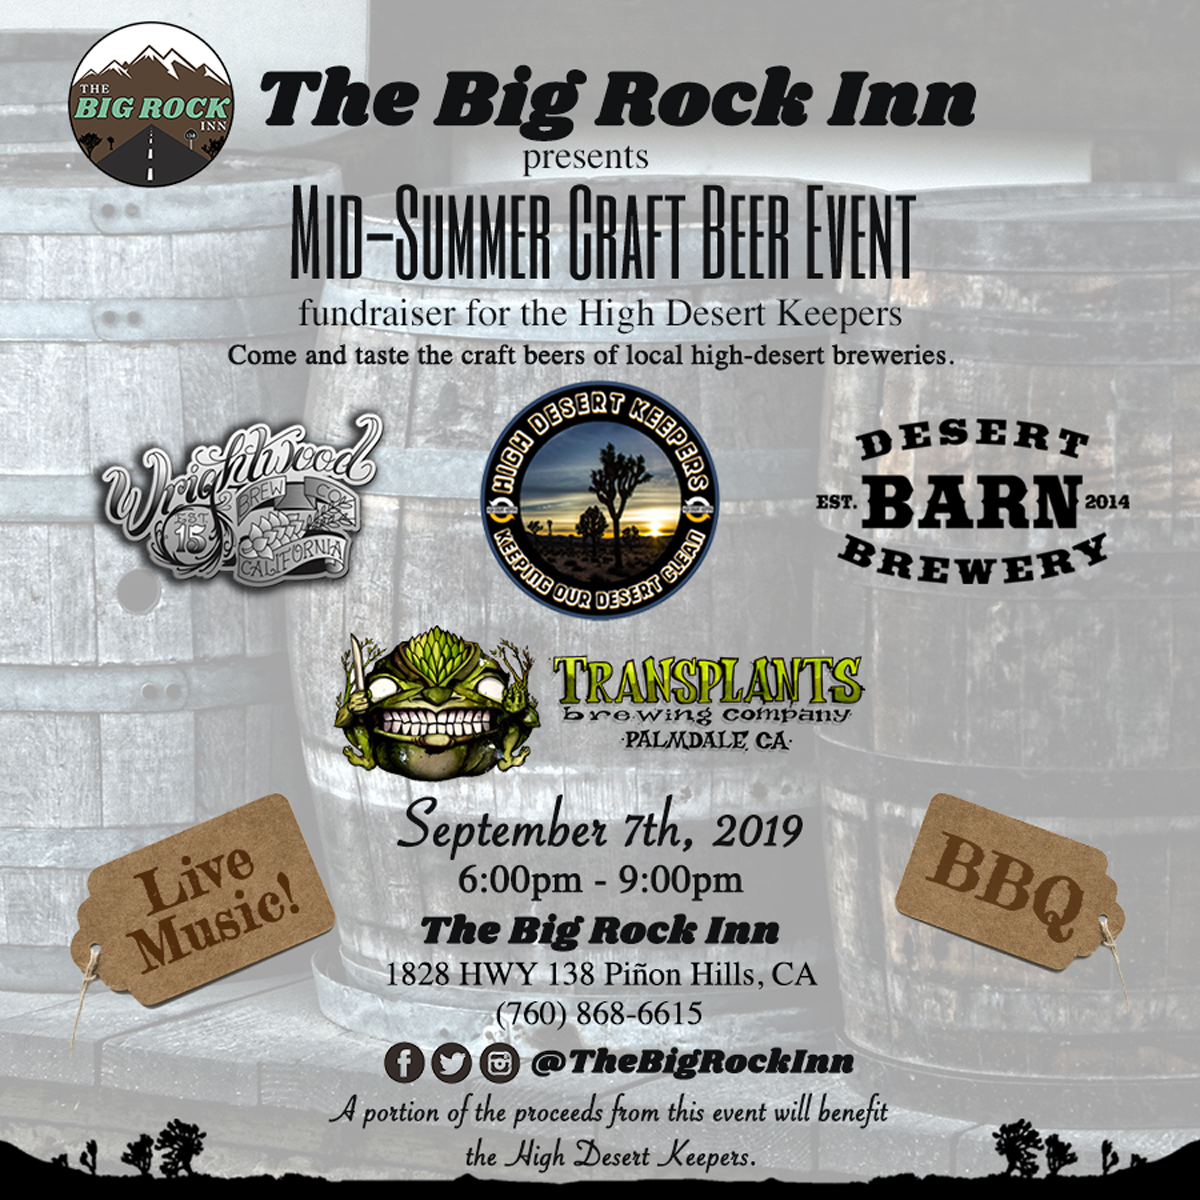 Mid-Summer Craft Beer Fundraiser for the High Desert Keepers | September 7th